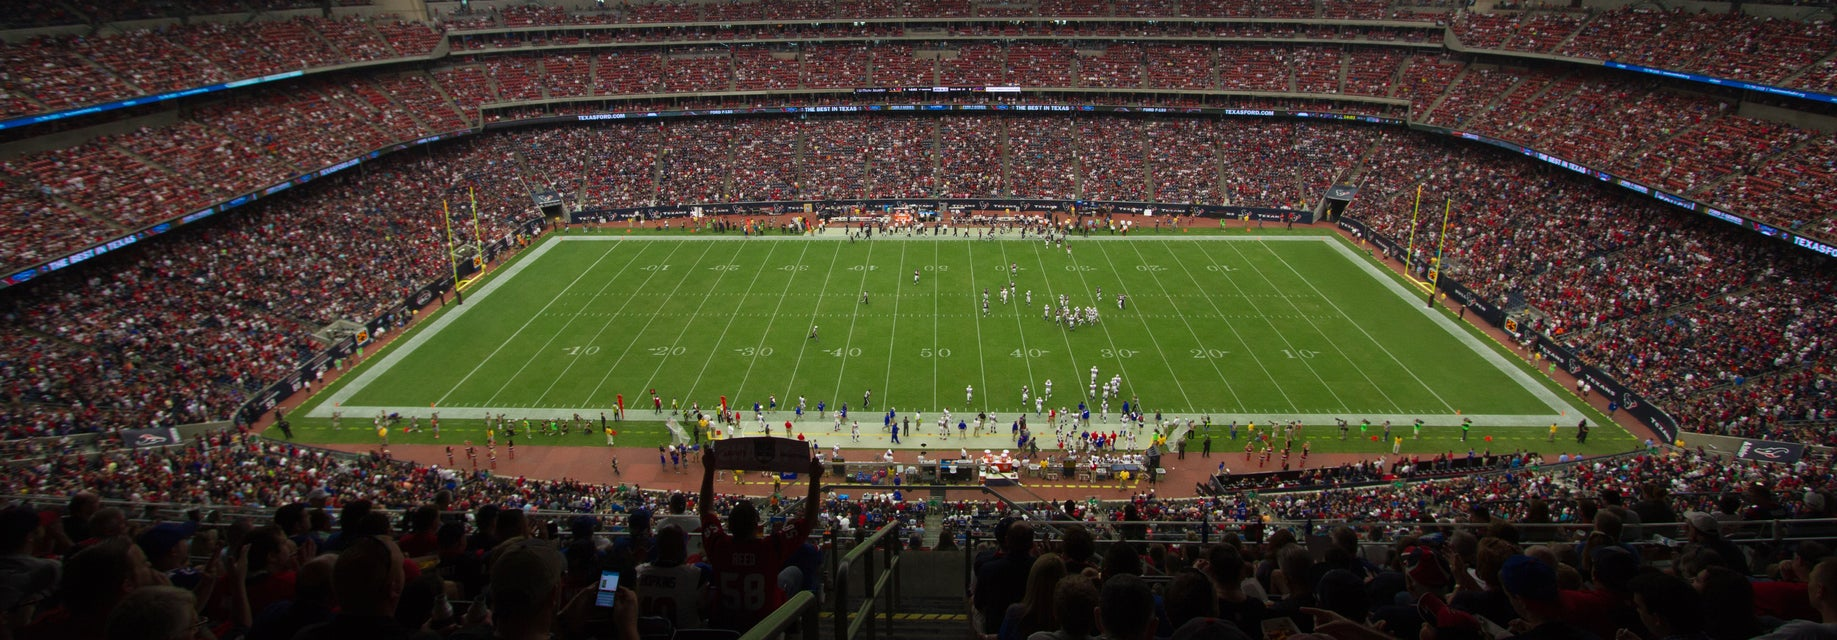 Seat view from Gridiron Midfield